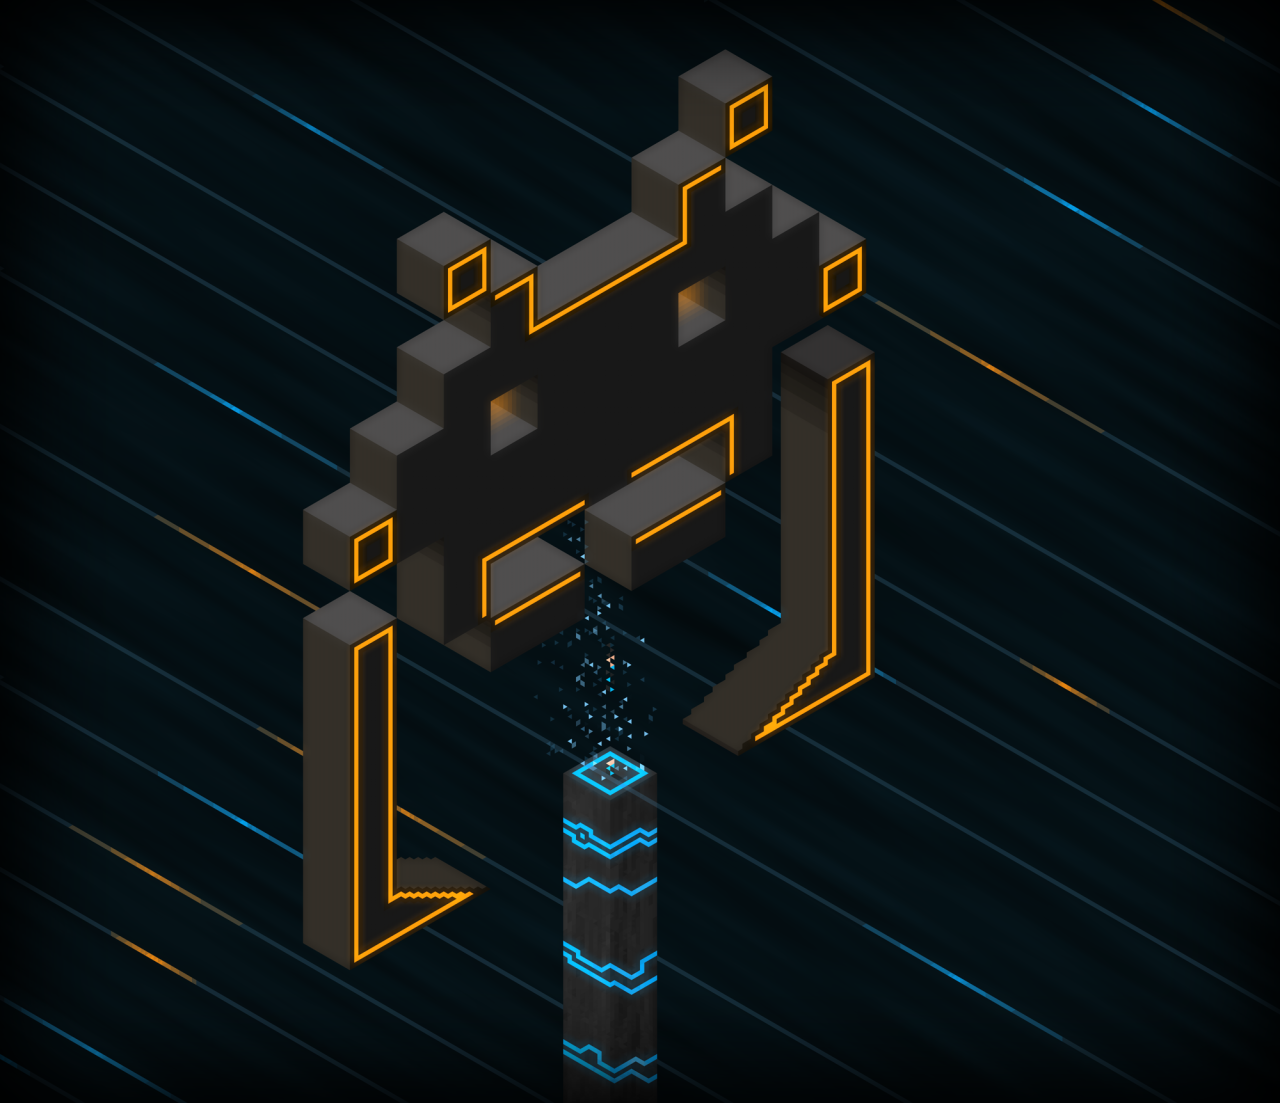 An invader in Tron, made with Hexels and Photoshop by @Ttstreet